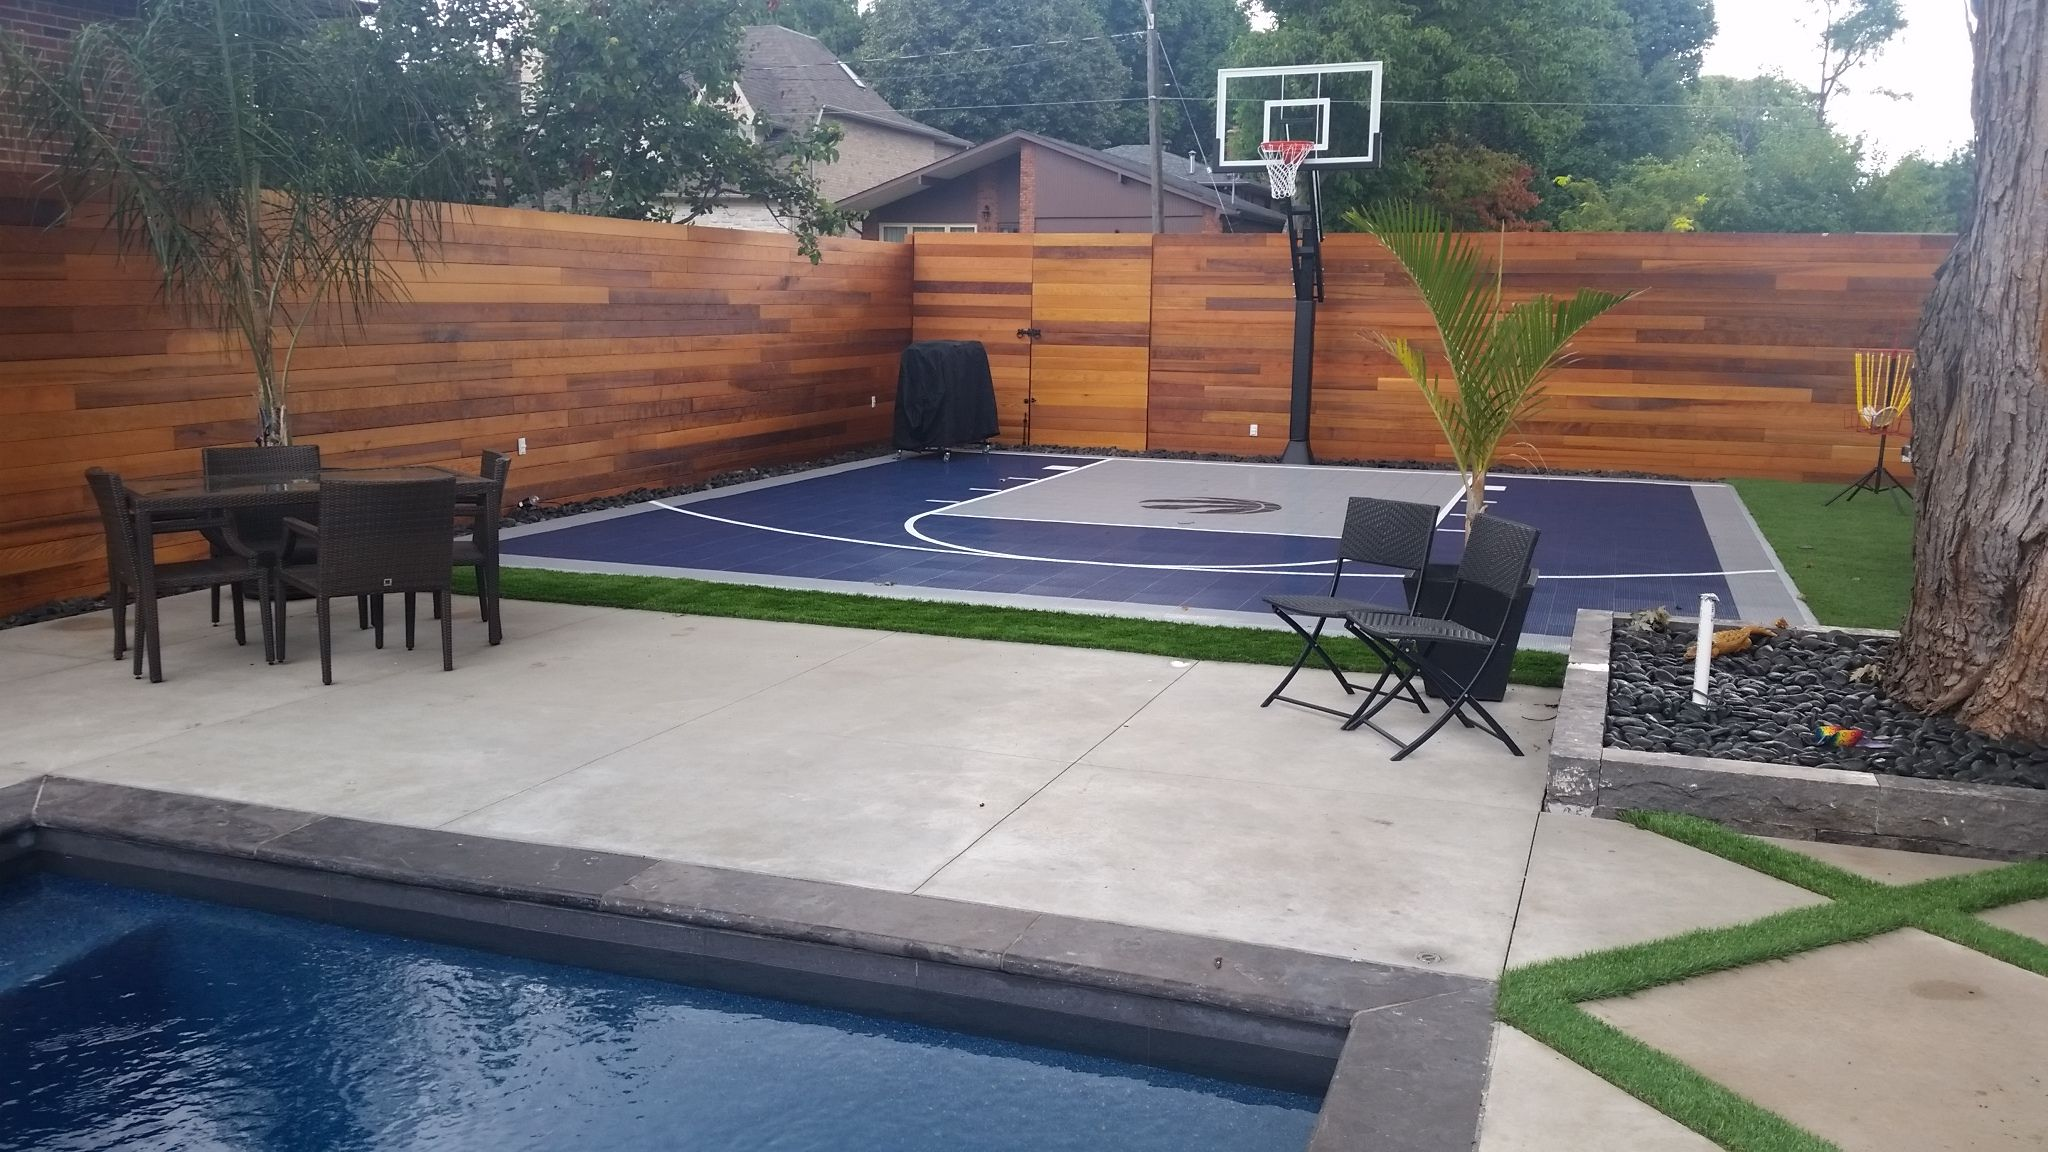 Beautiful 26 X 28 Backyard Court In Etobicoke On Snapsports Bounceback Shocktower Surface Ins Backyard Court Basketball Court Backyard Home Basketball Court